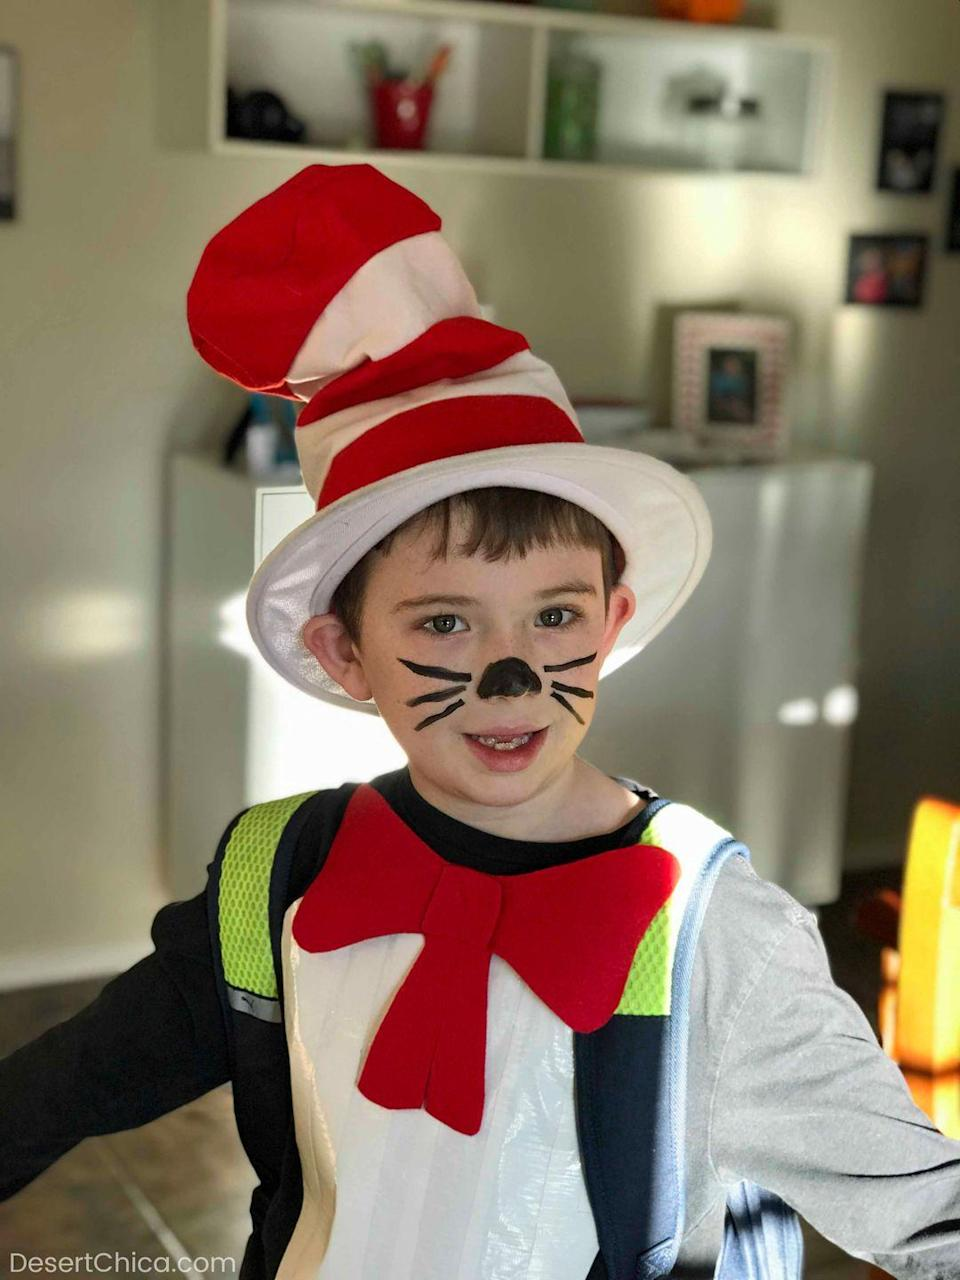 "<p>The nose and whiskers on this Cat in the Hat costume couldn't be easier to do. It only takes one color!.<br><br><em><a href=""https://desertchica.com/cat-in-the-hat-costume/"" rel=""nofollow noopener"" target=""_blank"" data-ylk=""slk:See more at Desert Chica »"" class=""link rapid-noclick-resp"">See more at Desert Chica »</a></em><strong><br></strong></p><p><strong>RELATED: </strong><a href=""https://www.goodhousekeeping.com/beauty/makeup/a22995483/cat-makeup/"" rel=""nofollow noopener"" target=""_blank"" data-ylk=""slk:We're Obsessed With This Easy Cat Makeup Tutorial"" class=""link rapid-noclick-resp"">We're Obsessed With This Easy Cat Makeup Tutorial</a></p>"